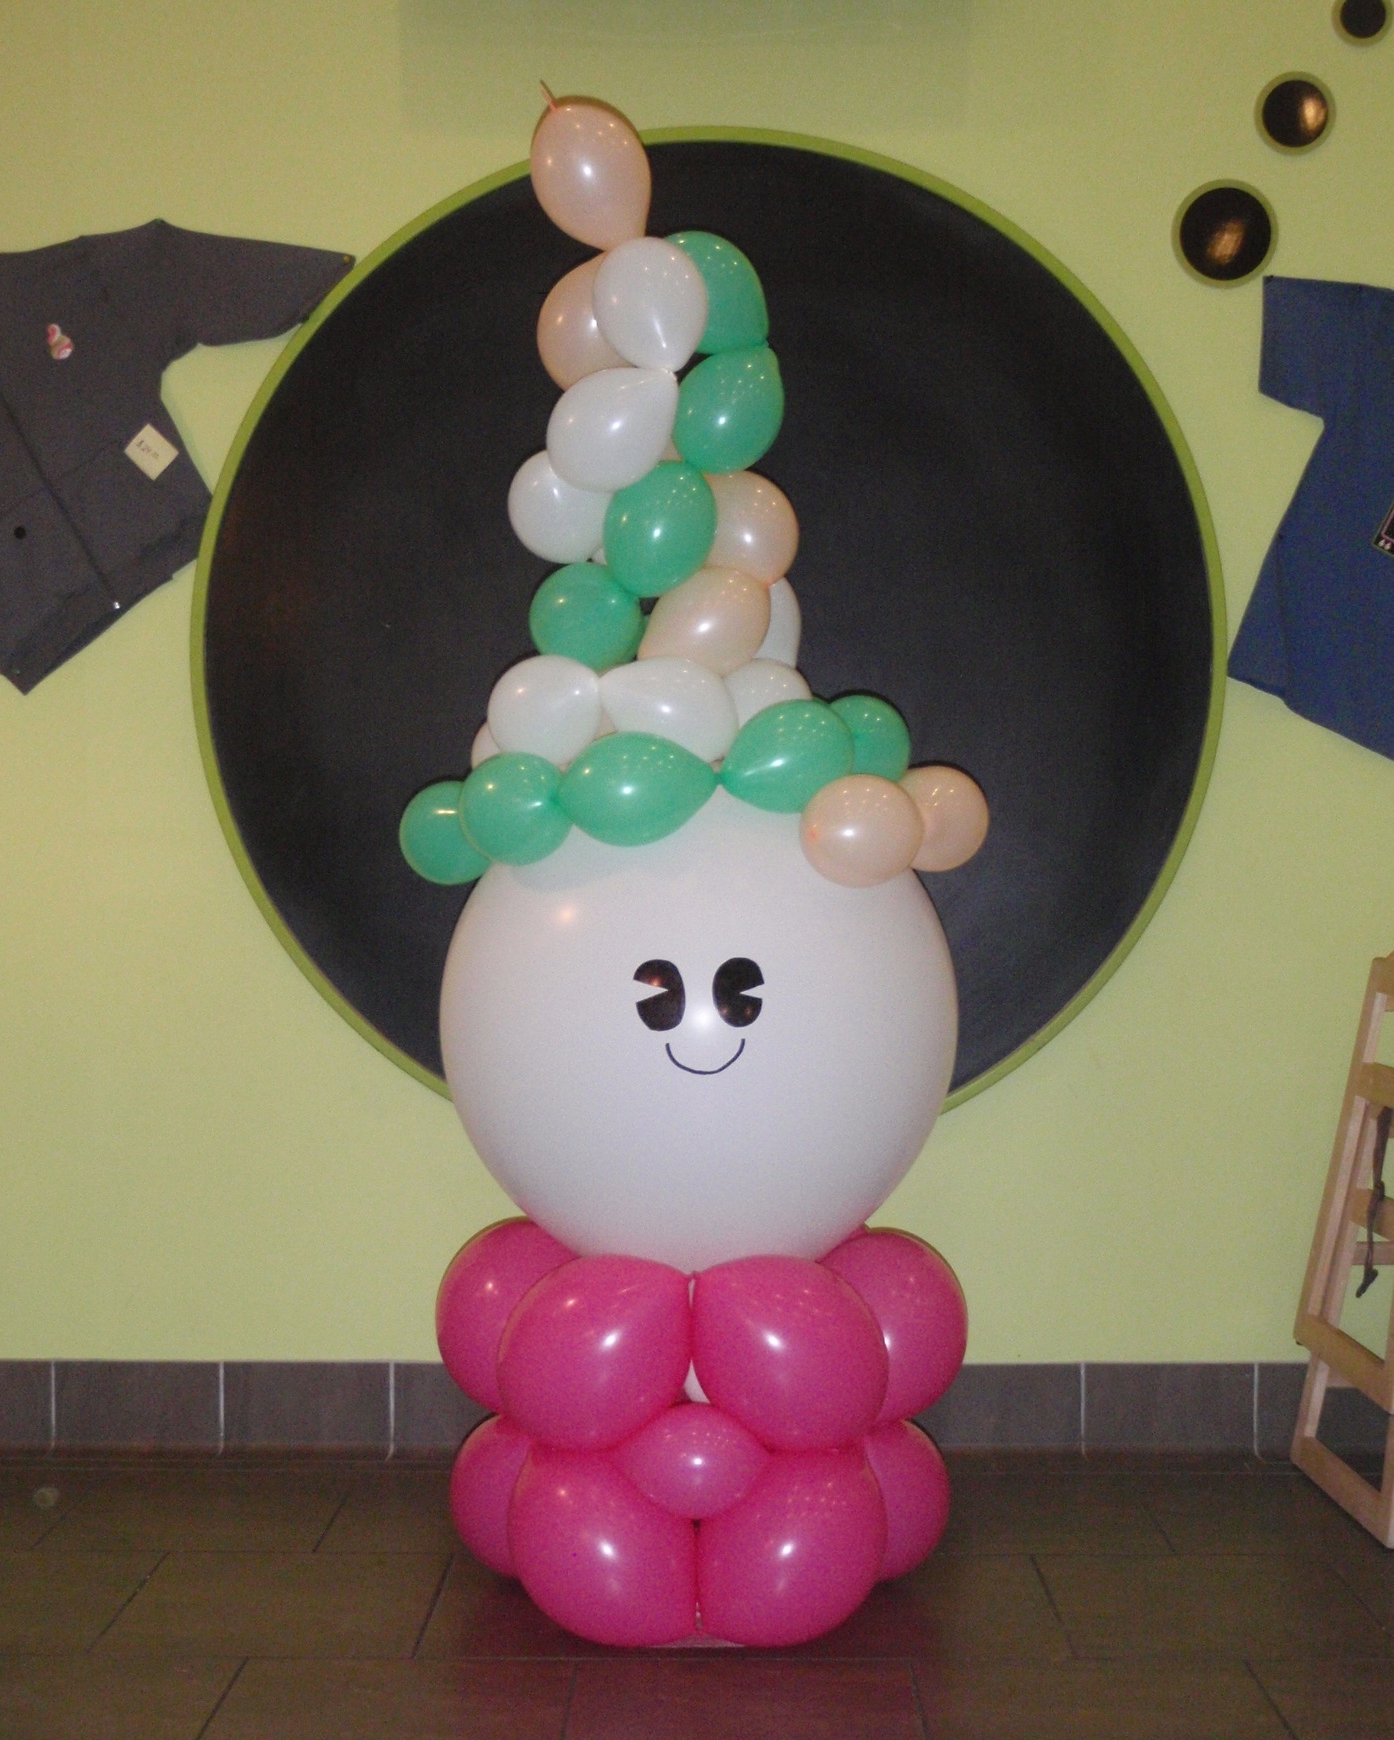 Balloon recreation of the Menchies frozen yogurt logo